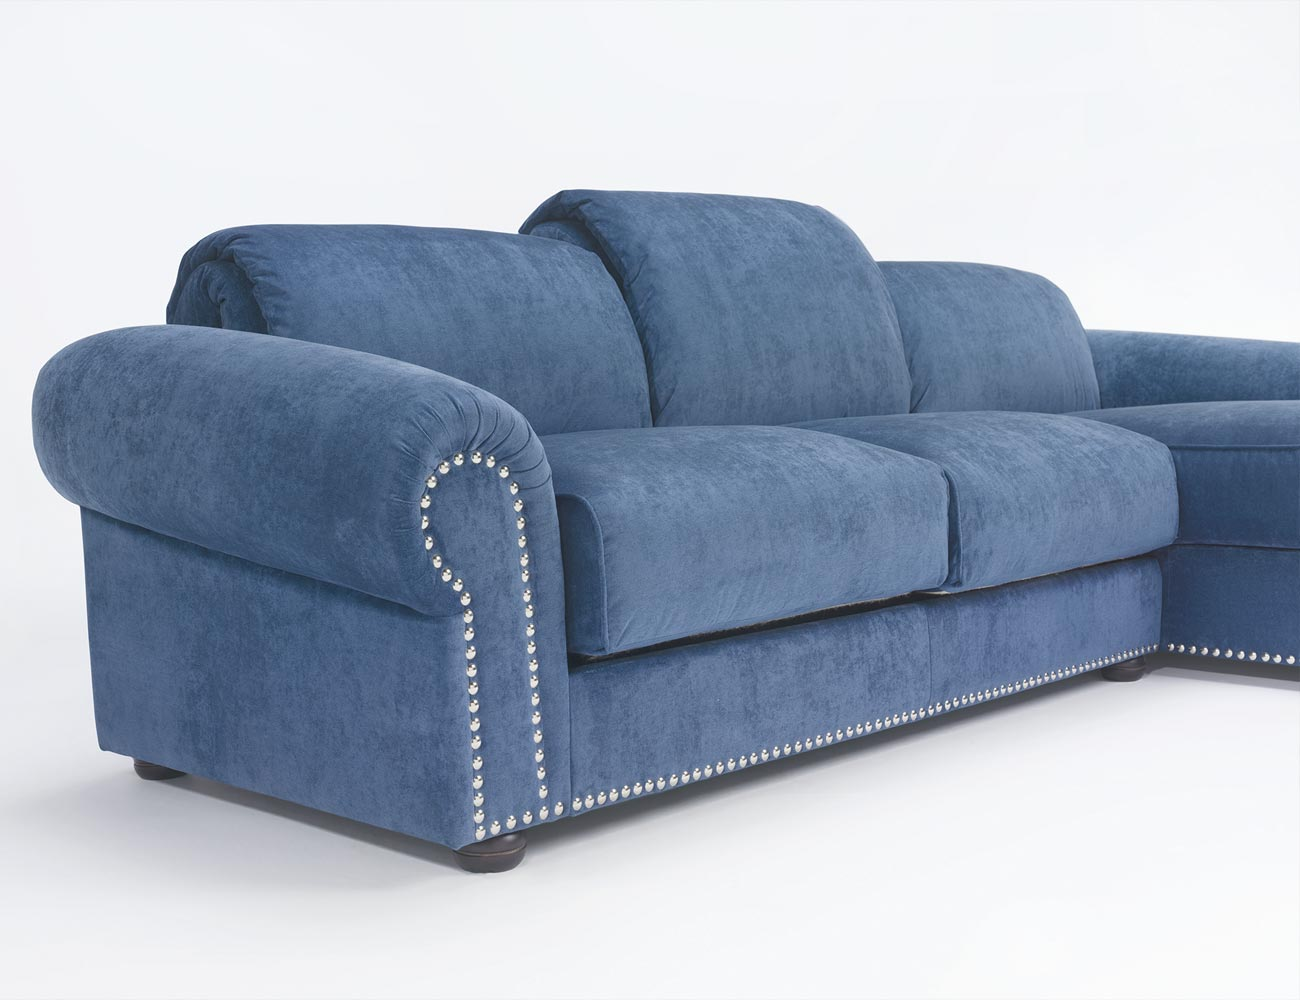 Sofa chaiselongue gran lujo decorativo azul 127